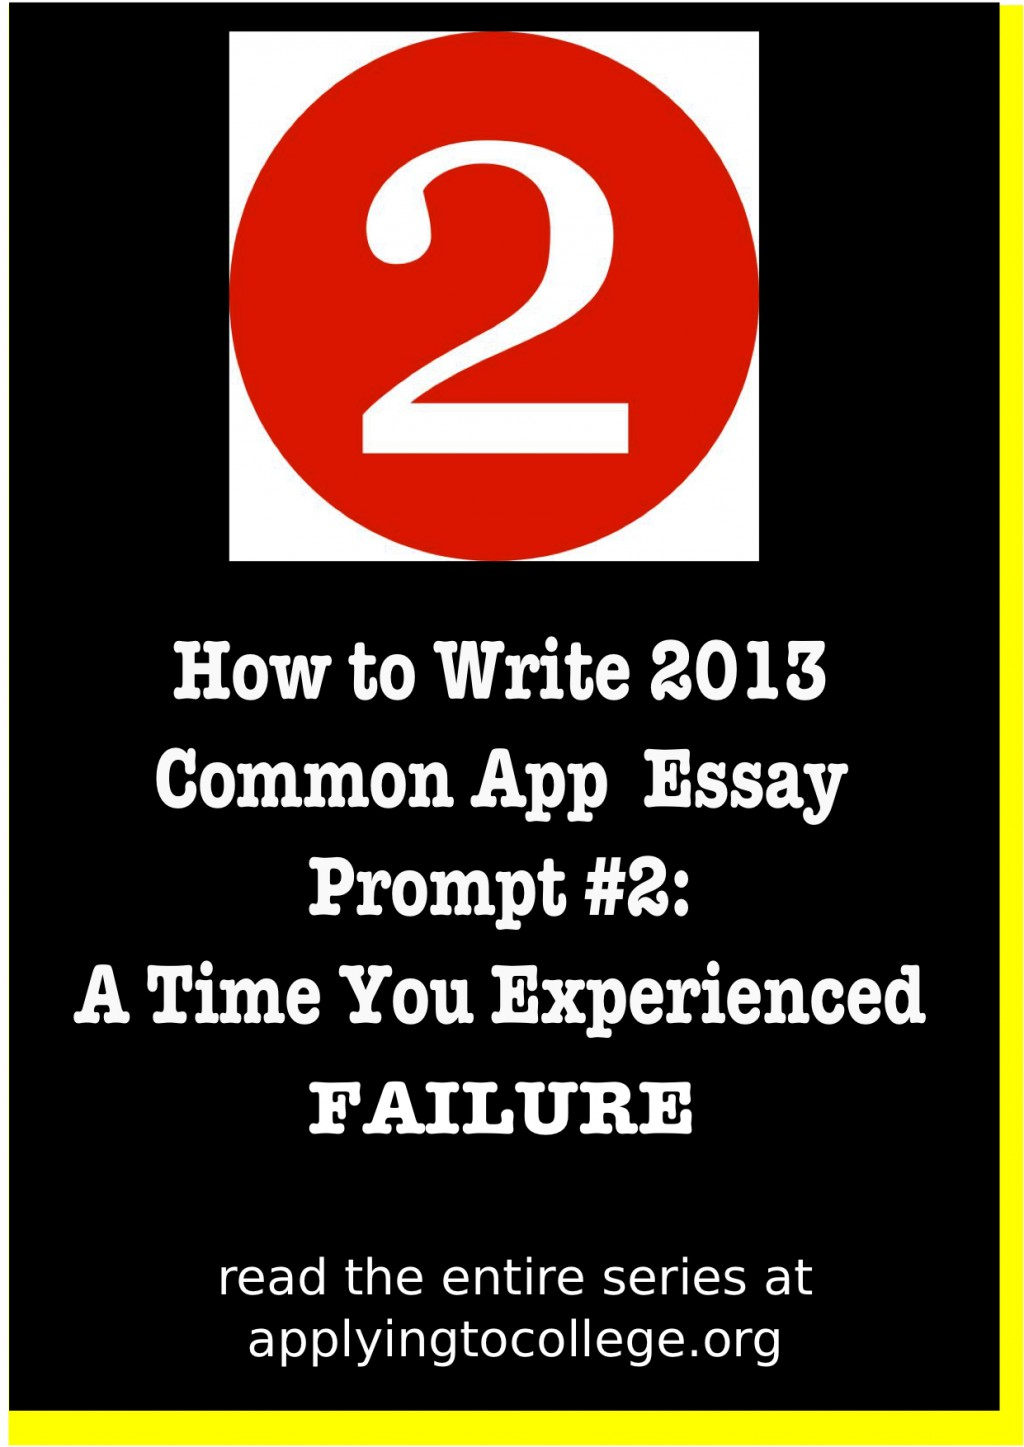 019 How To Write Common App Failure Essay1 Essay Example Prompts Rare 2015-16 Large